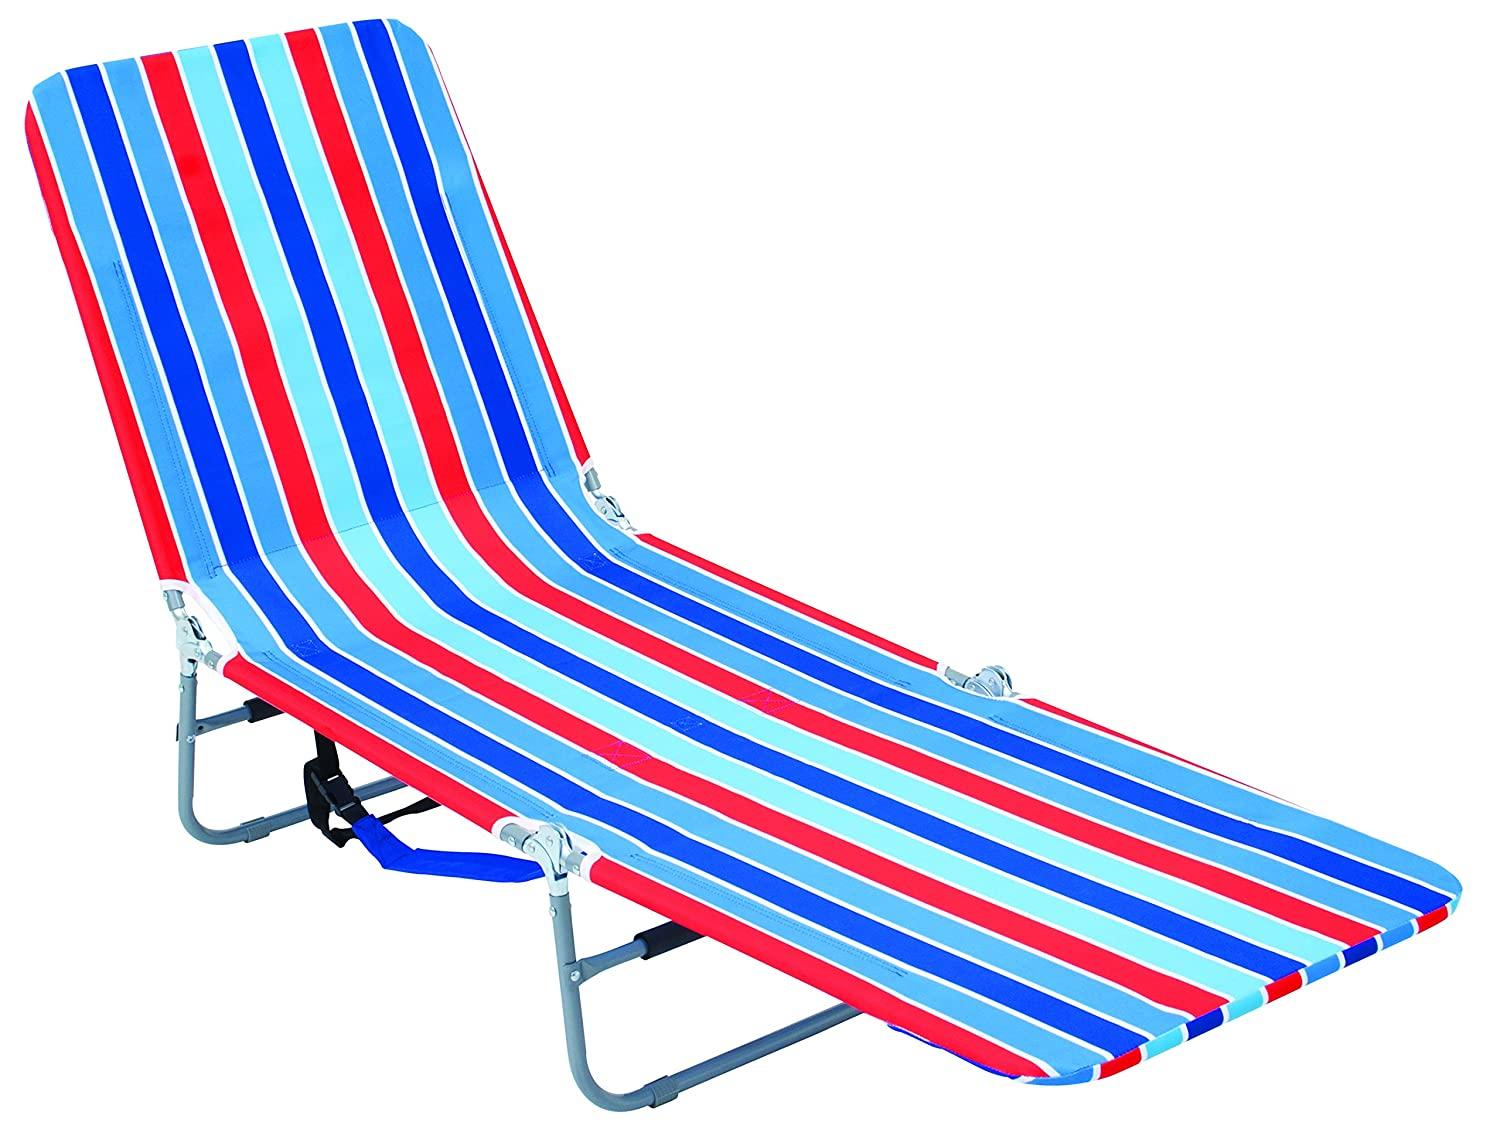 Plastic outdoor lounge chairs - Rio Brands Backpack Lounger Multi Position